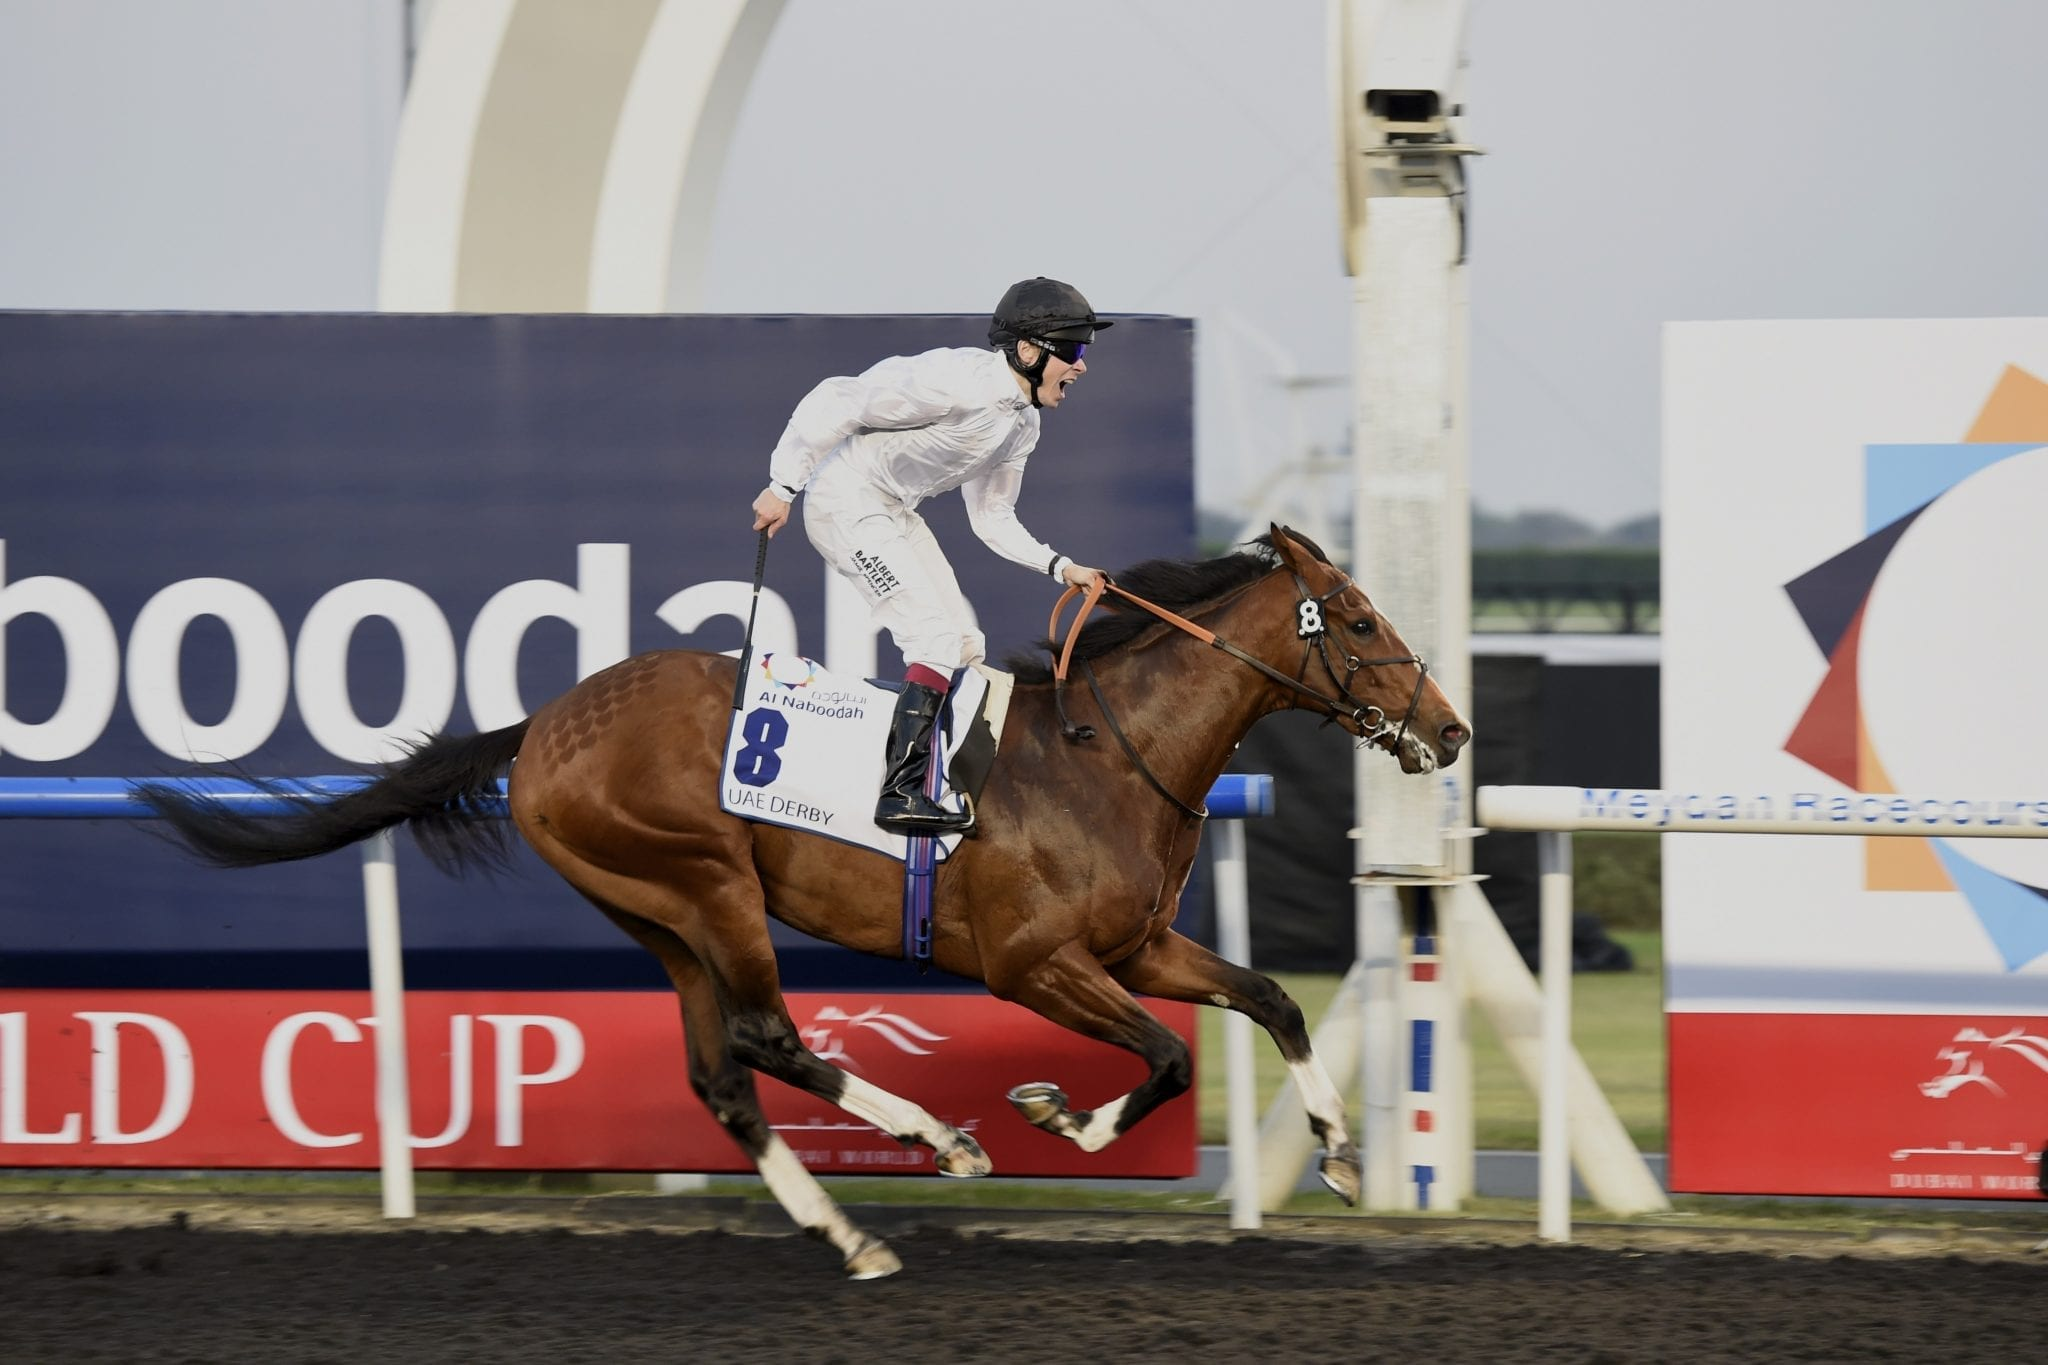 Toast Of New York winning the 2014 UAE Derby